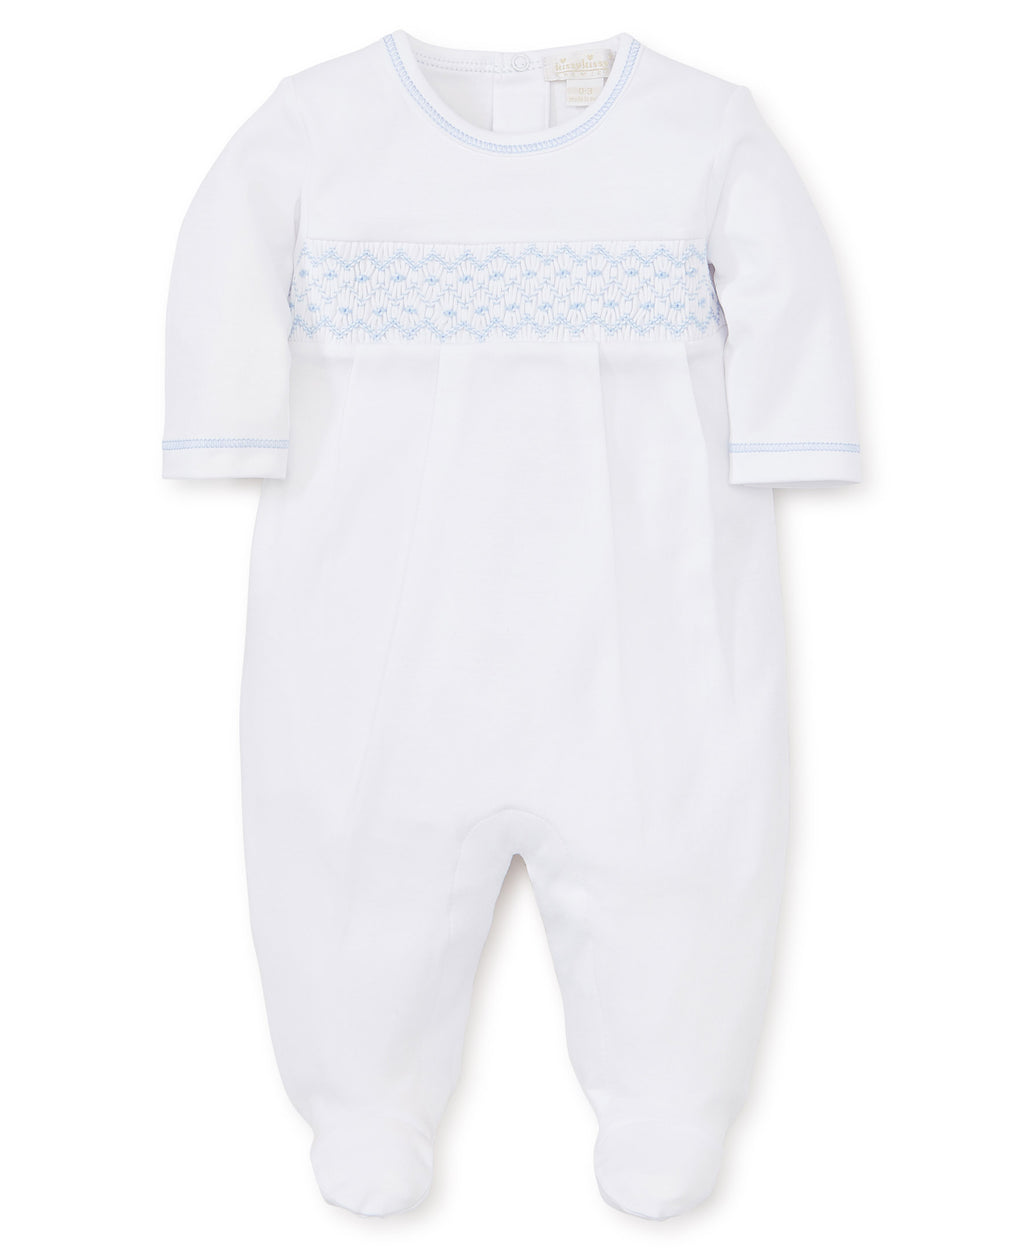 Kissy Kissy Boy's Footie with Handsmock White/ Lt Blue